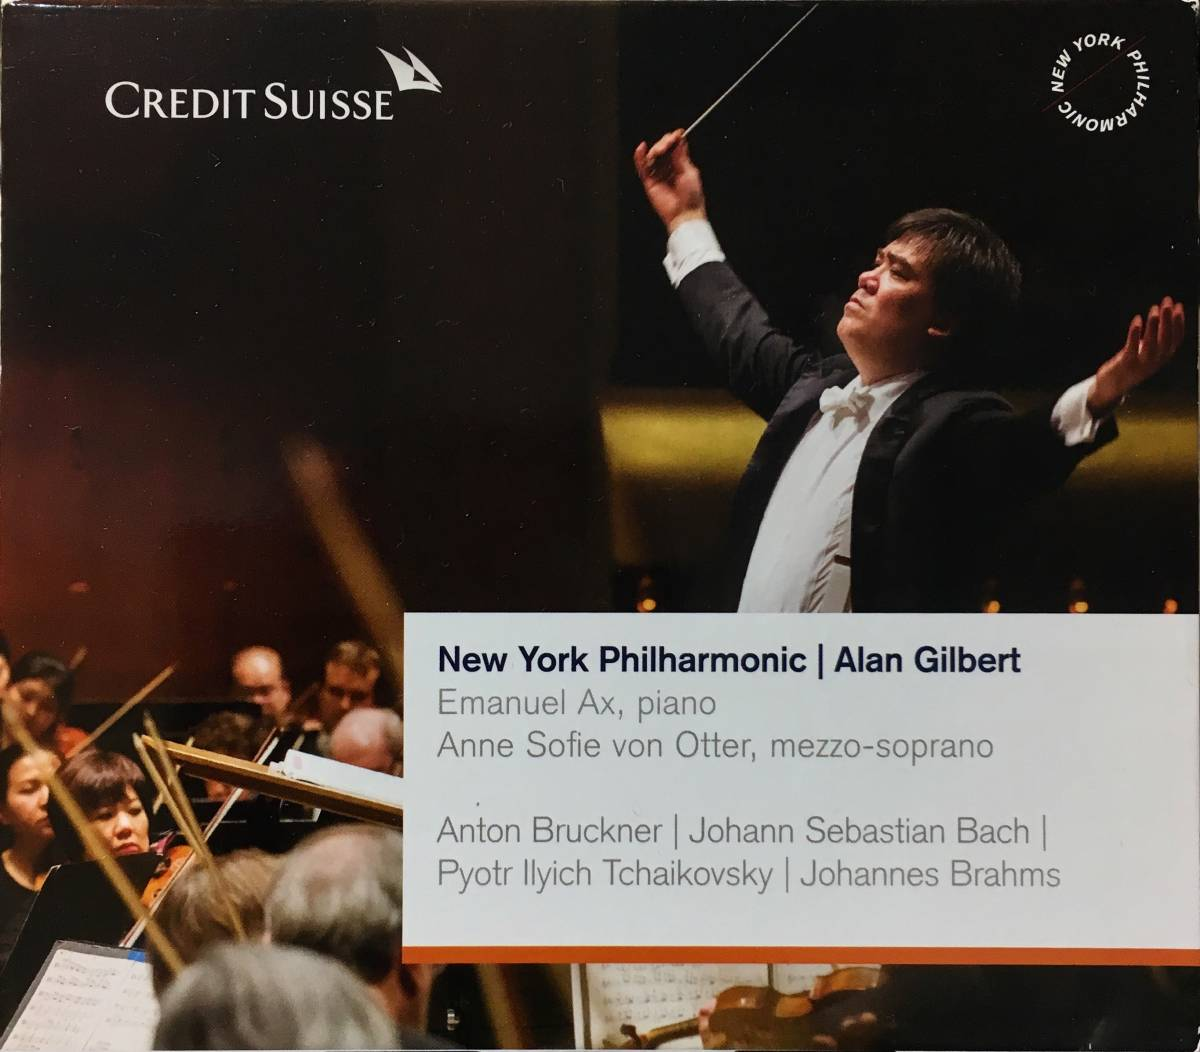 (Z0H)★レア盤/CREDIT SUISSE/2013-14 Your Gift from Alan Gilbert & The Newyork Philharmonic/Emanuel Ax/Anne Sofie von Otter★_画像1